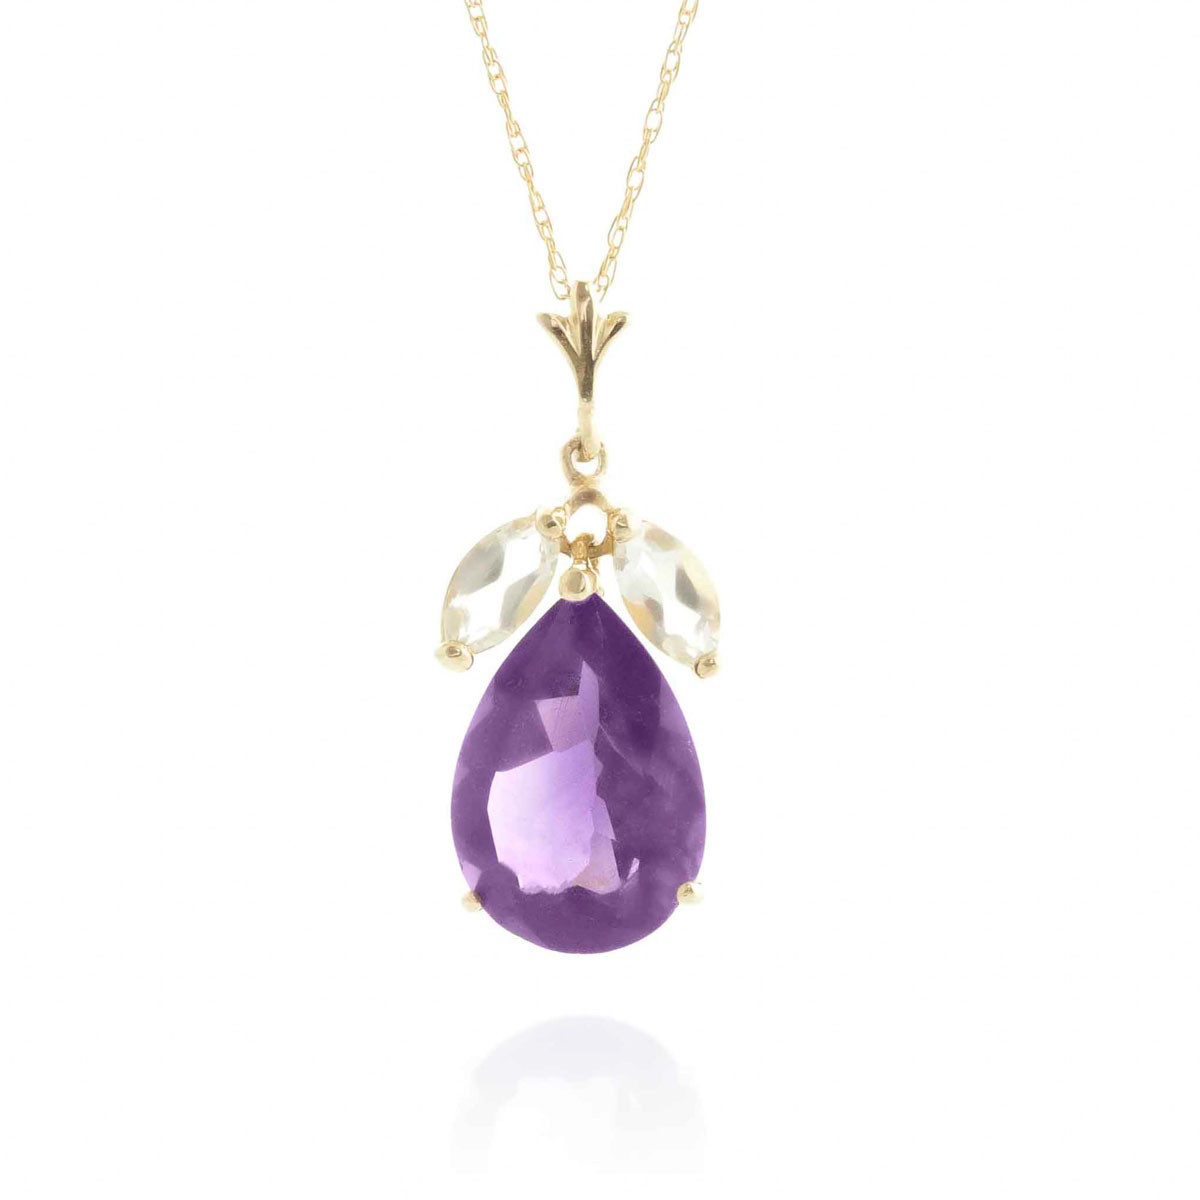 Amethyst & White Topaz Pear Drop Pendant Necklace in 9ct Gold